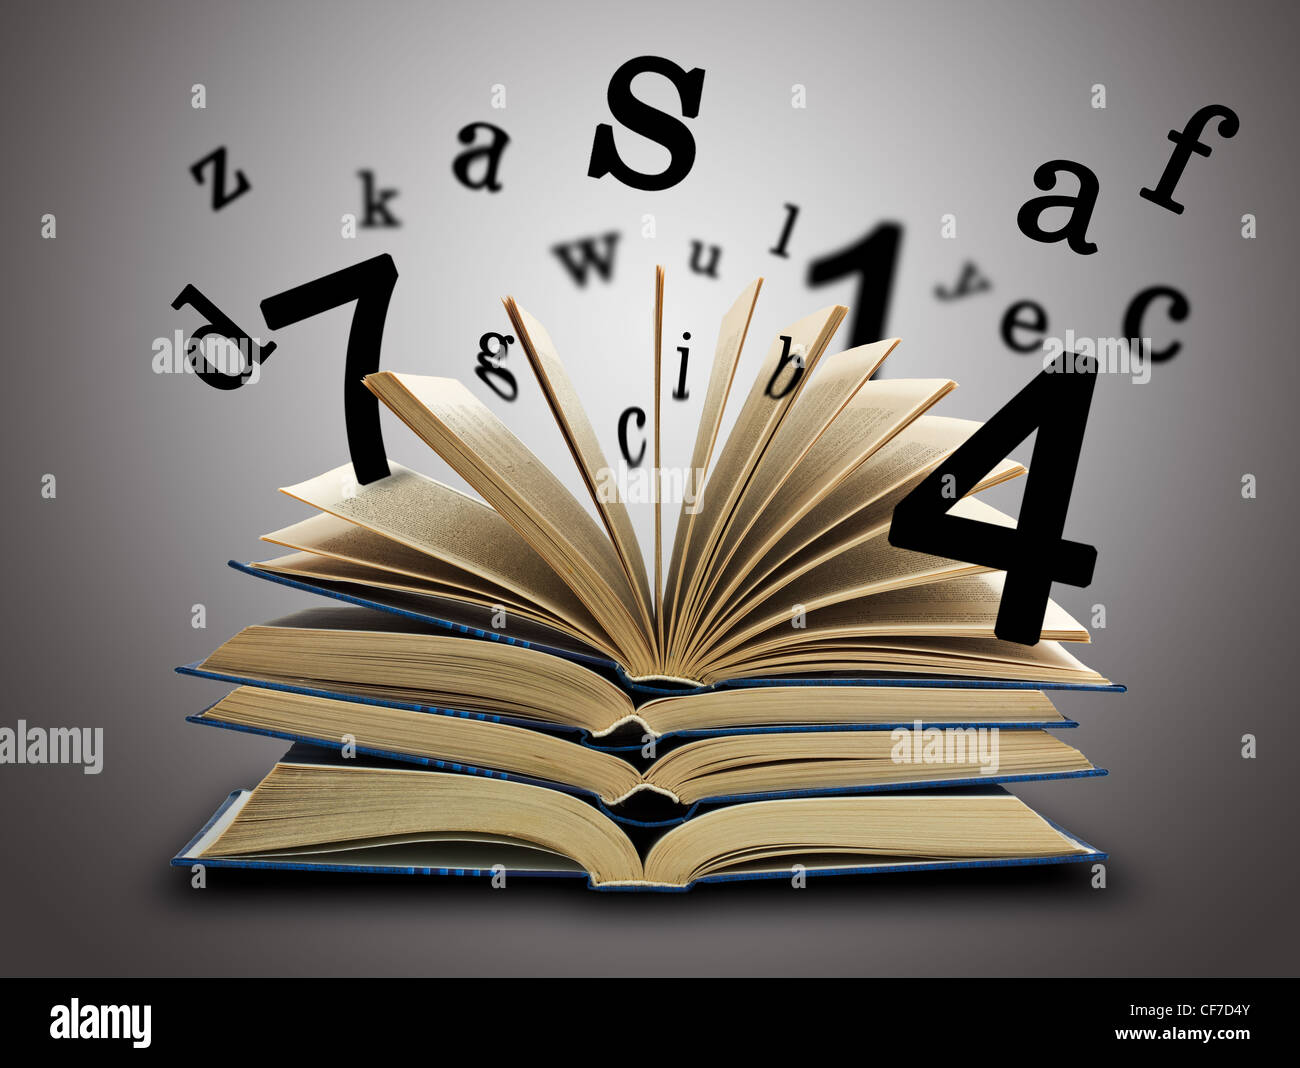 The Magic Book and the letters, numbers on a dark background. Education concept - Stock Image